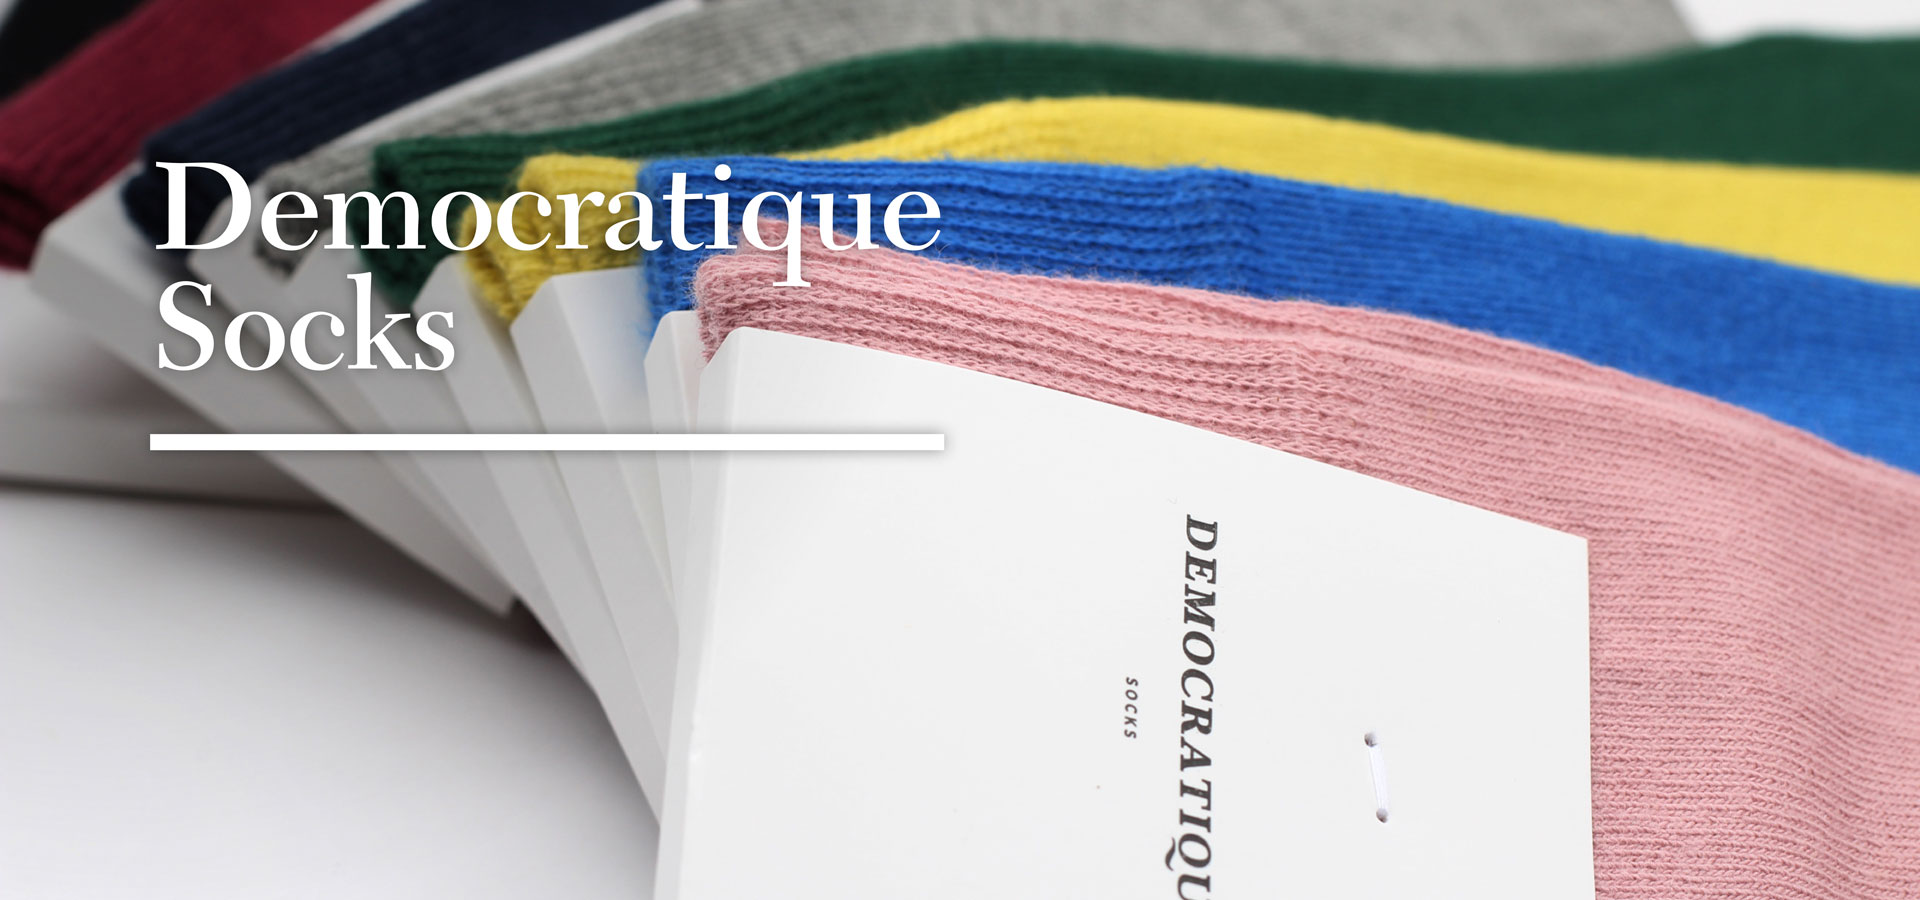 democratique-socks-01